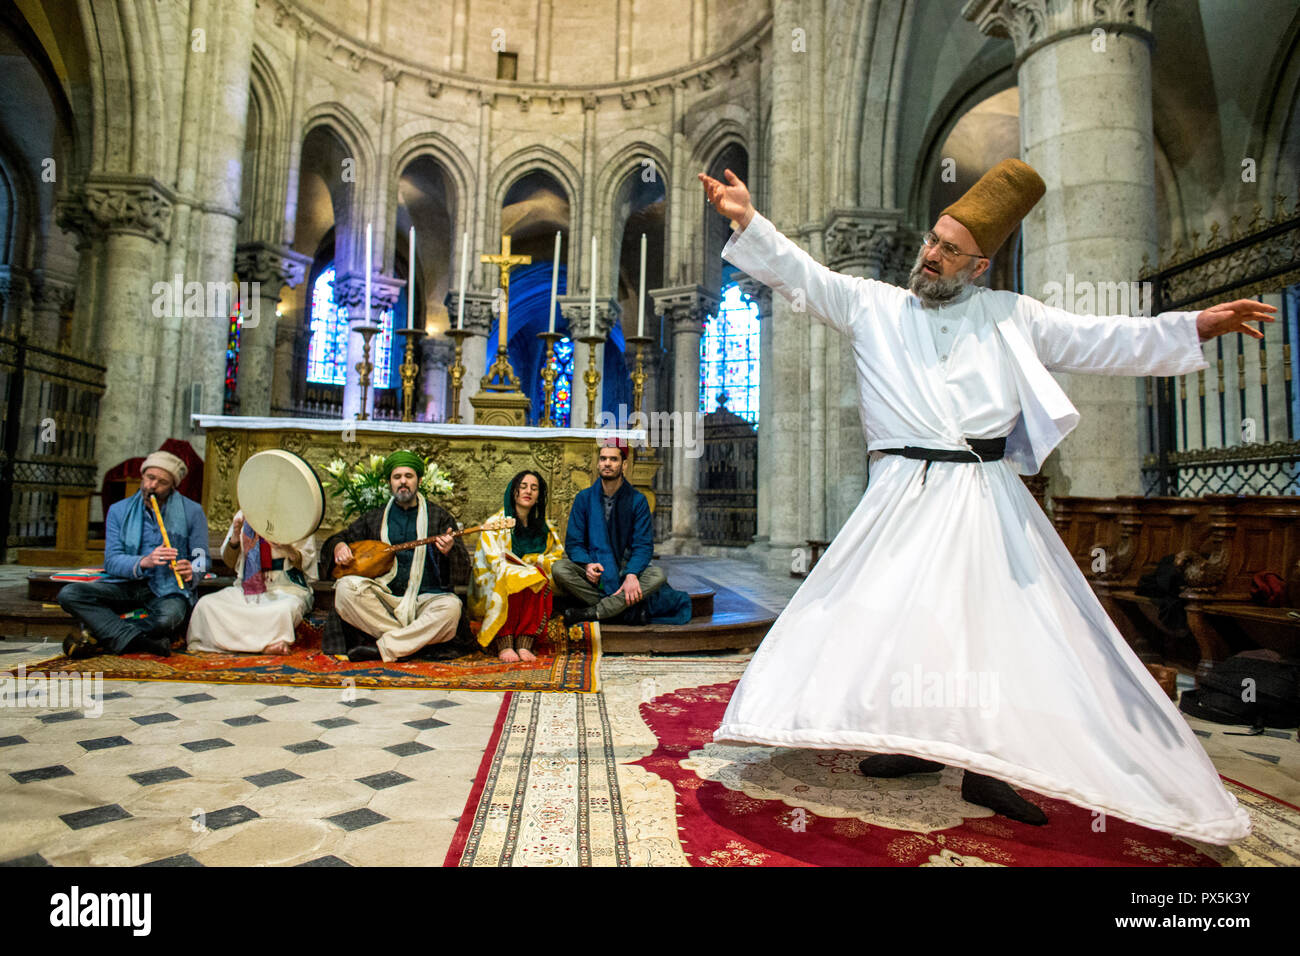 Sufi muslim wedding in St Nicolas's catholic church, Blois, France. Sufi music band and whirling dervish. - Stock Image